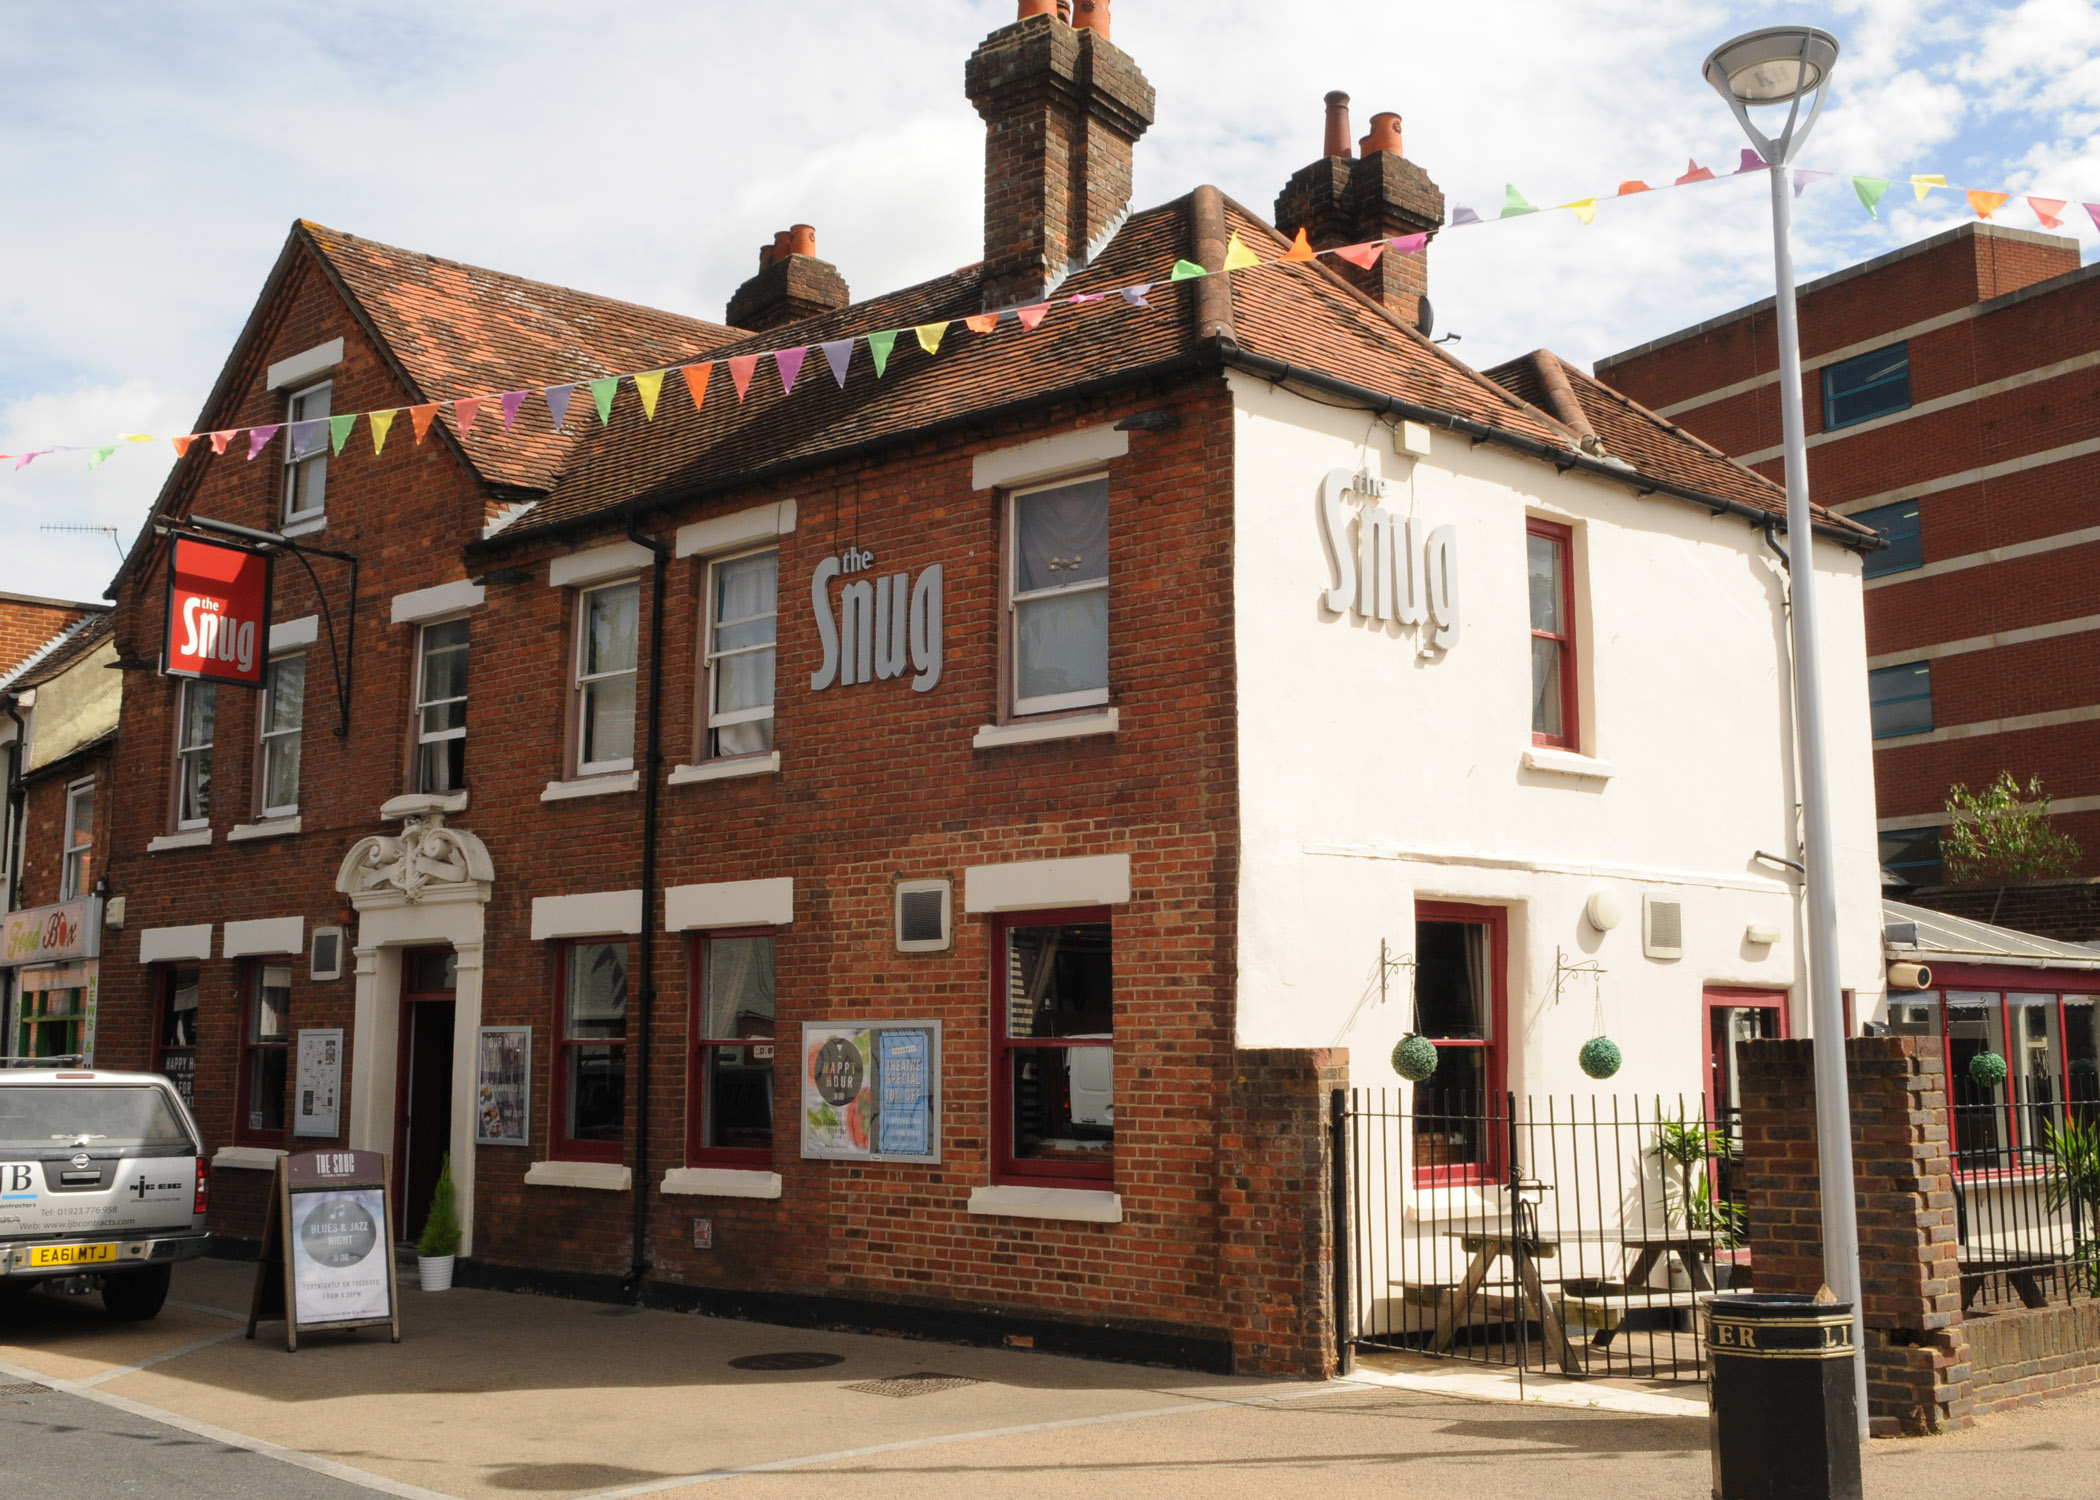 Food review: The Snug, High Wycombe